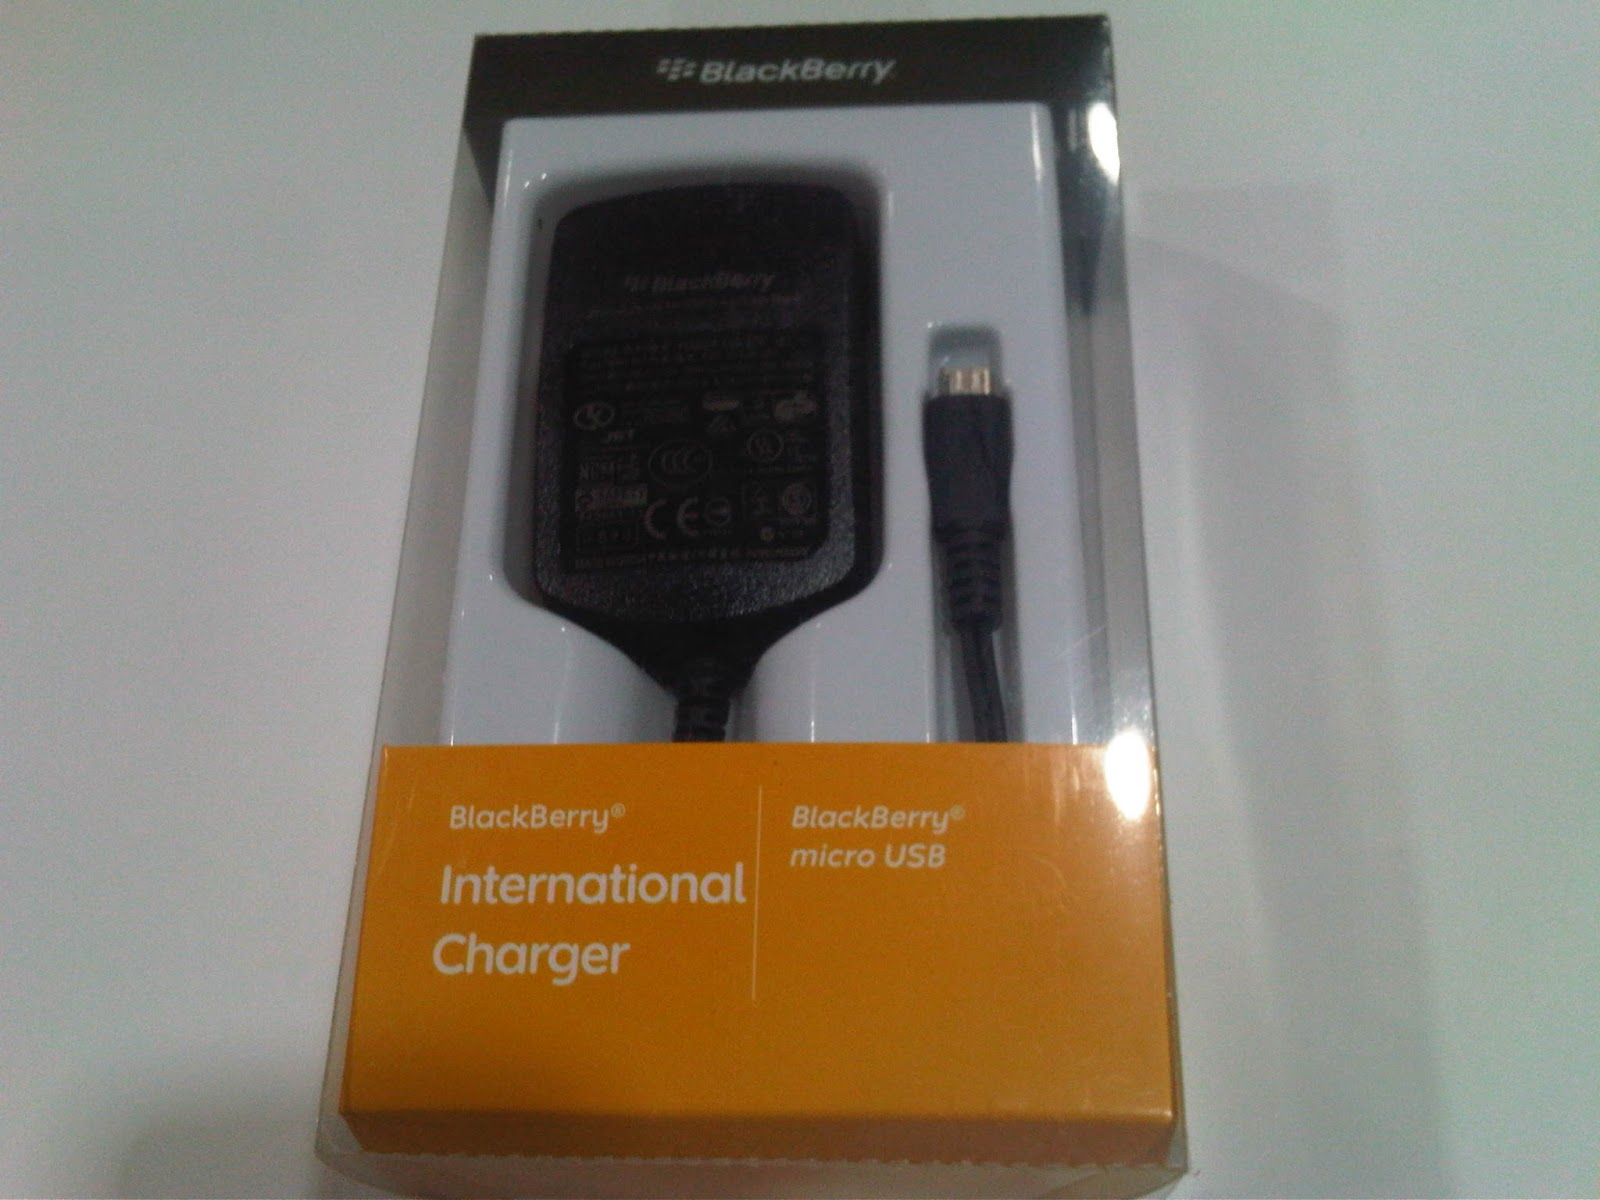 blackberry micro environment Blackberry18a micro usb travel simple and secure integration with your enterprise environment blackberry is the best professional tool for those who strive.